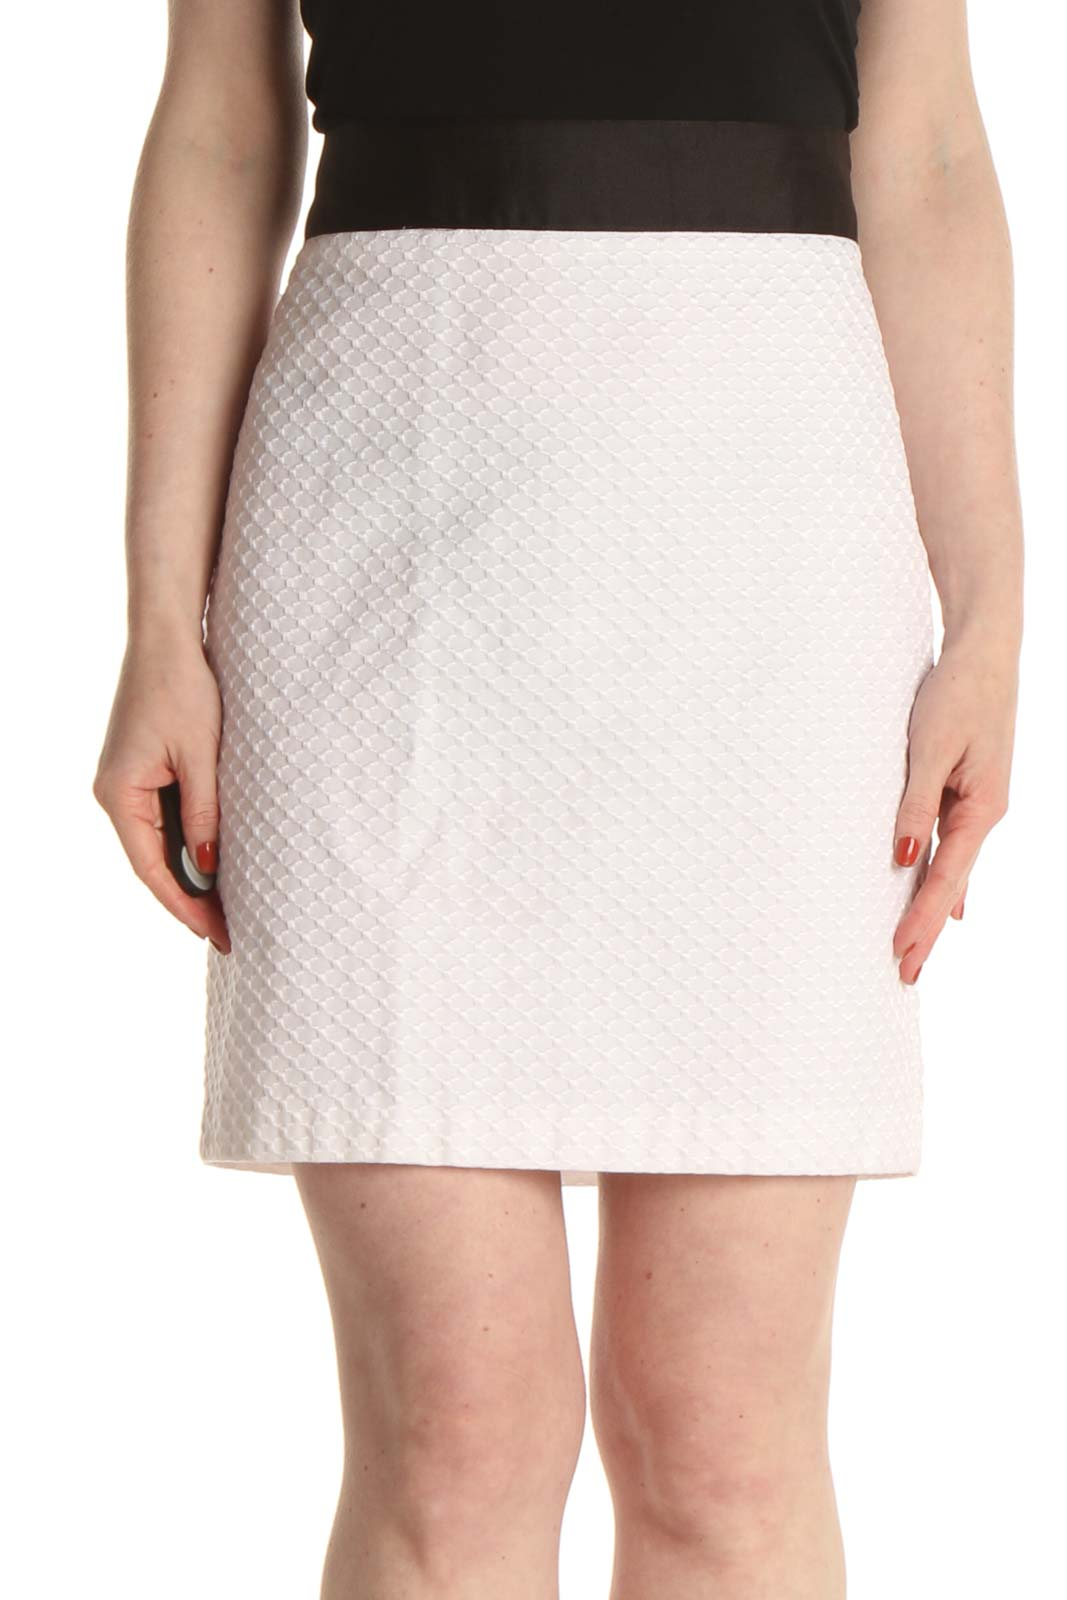 White Chic Pencil Skirt Front